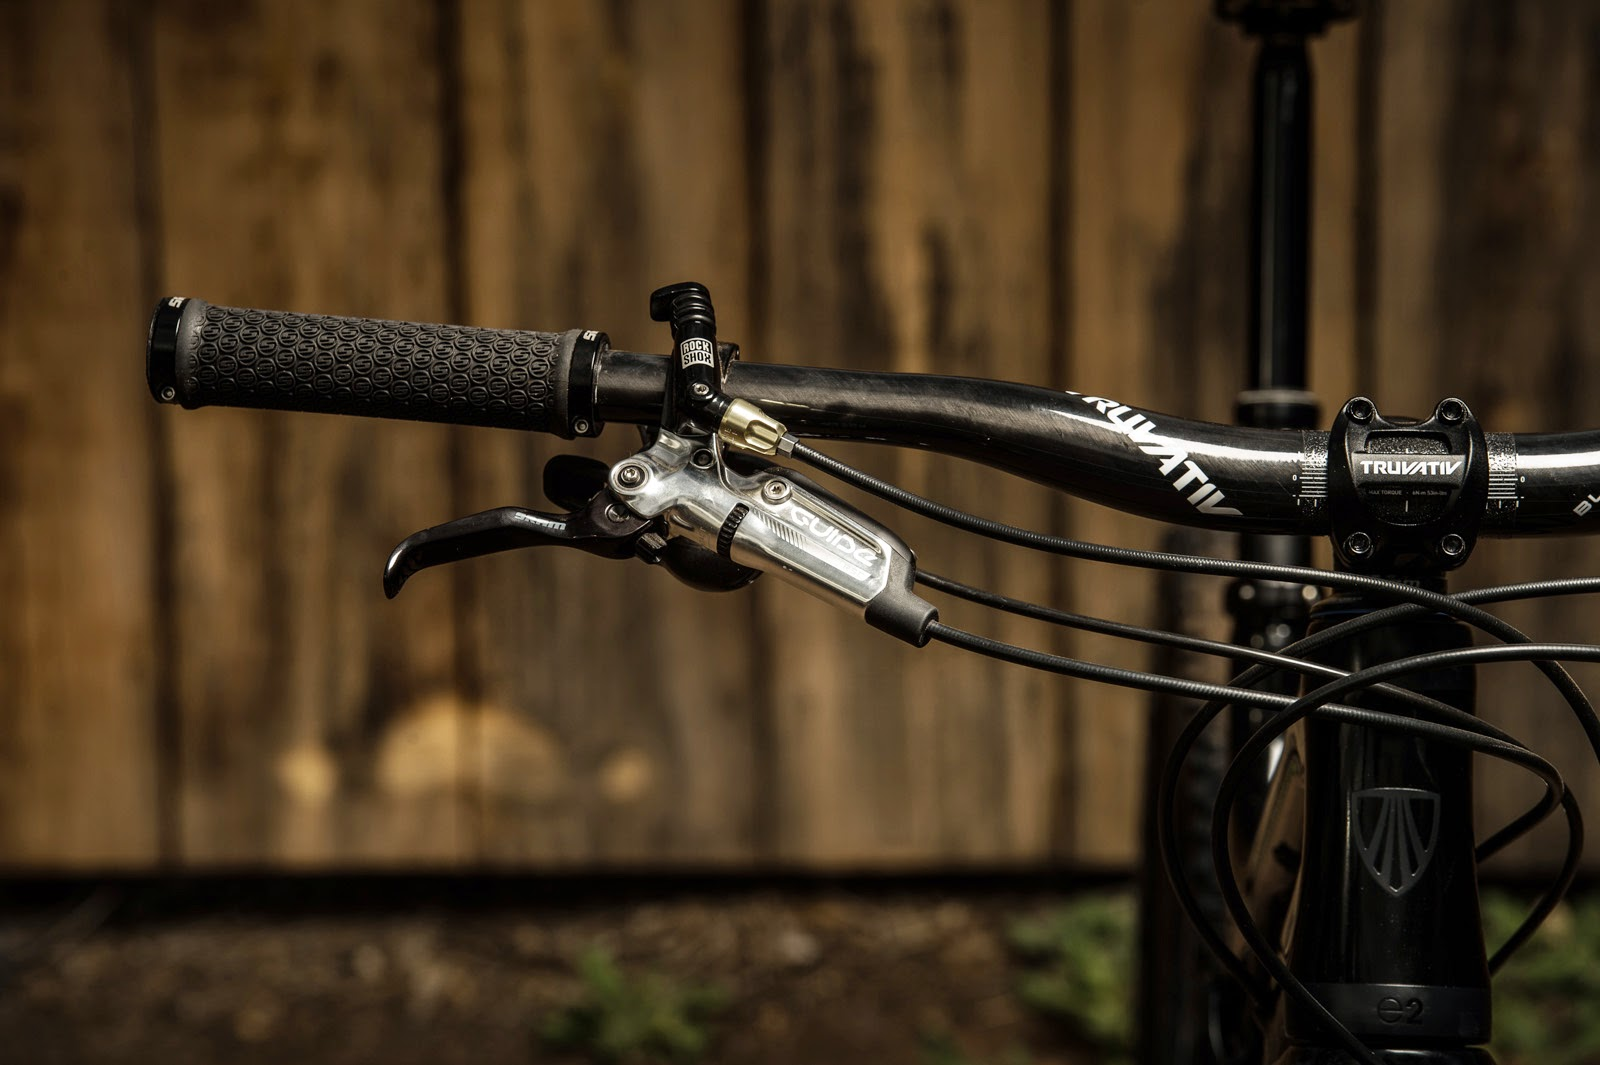 Bike News, Report, New Product, New Technology, Look Closer, SRAM brakeset, new SRAM brakeset